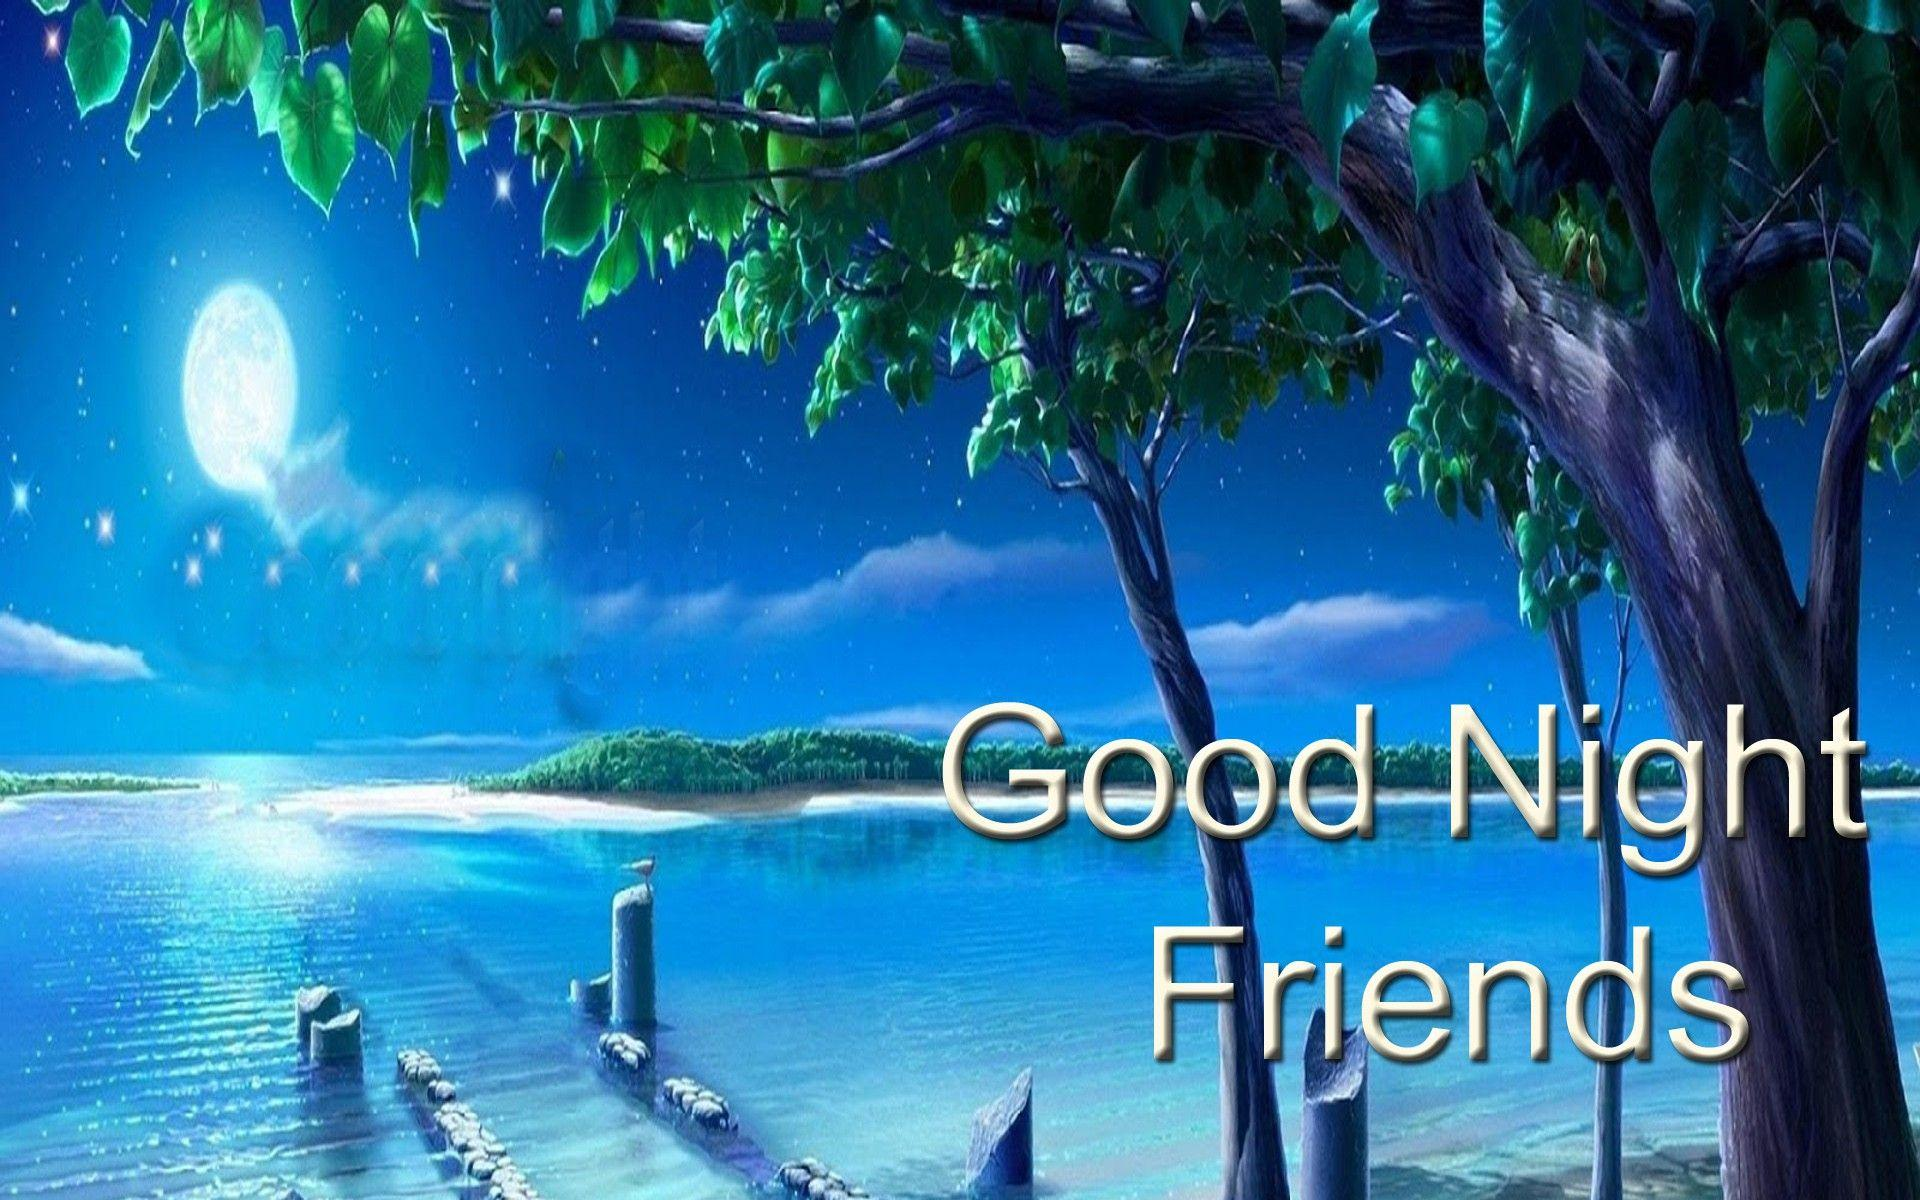 Good Night Friends Wallpapers Hd Wallpaper Cave